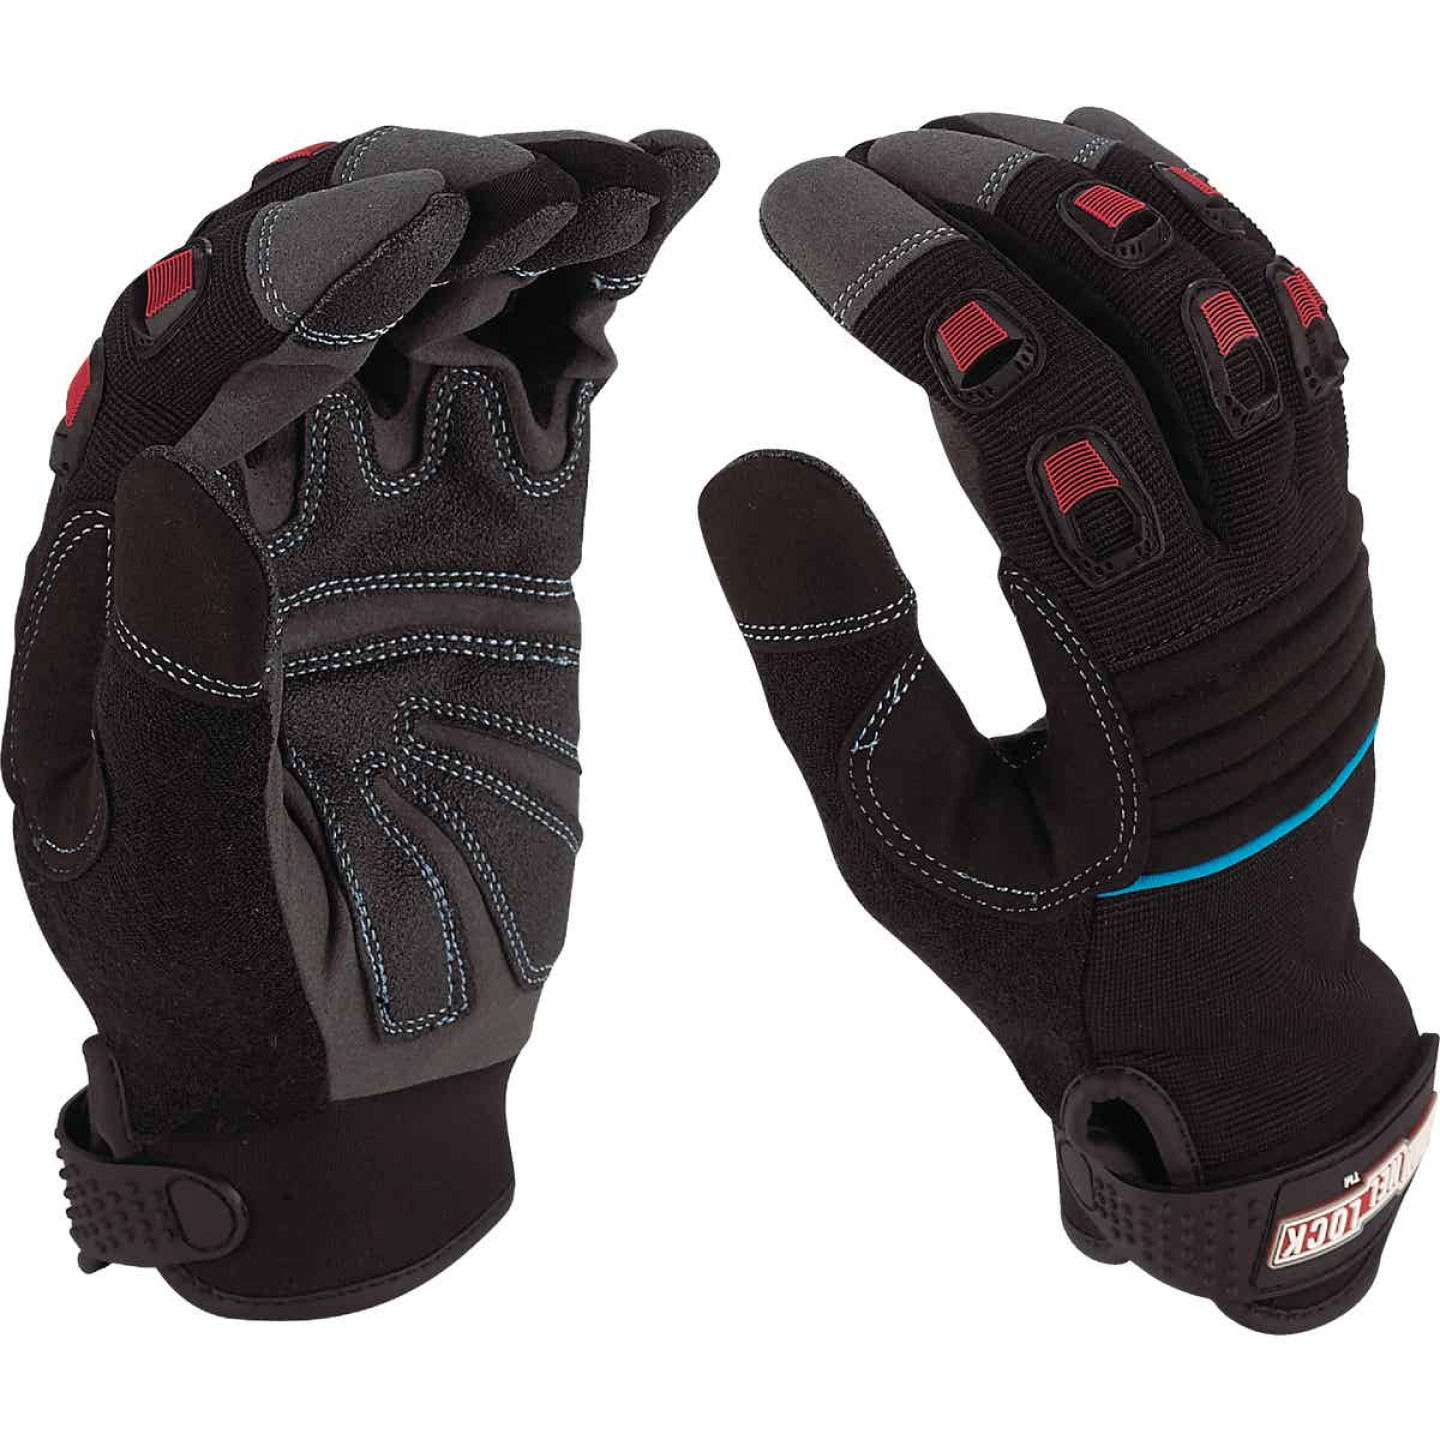 Channellock Men's Medium Synthetic Leather Heavy-Duty High Performance Glove Image 4